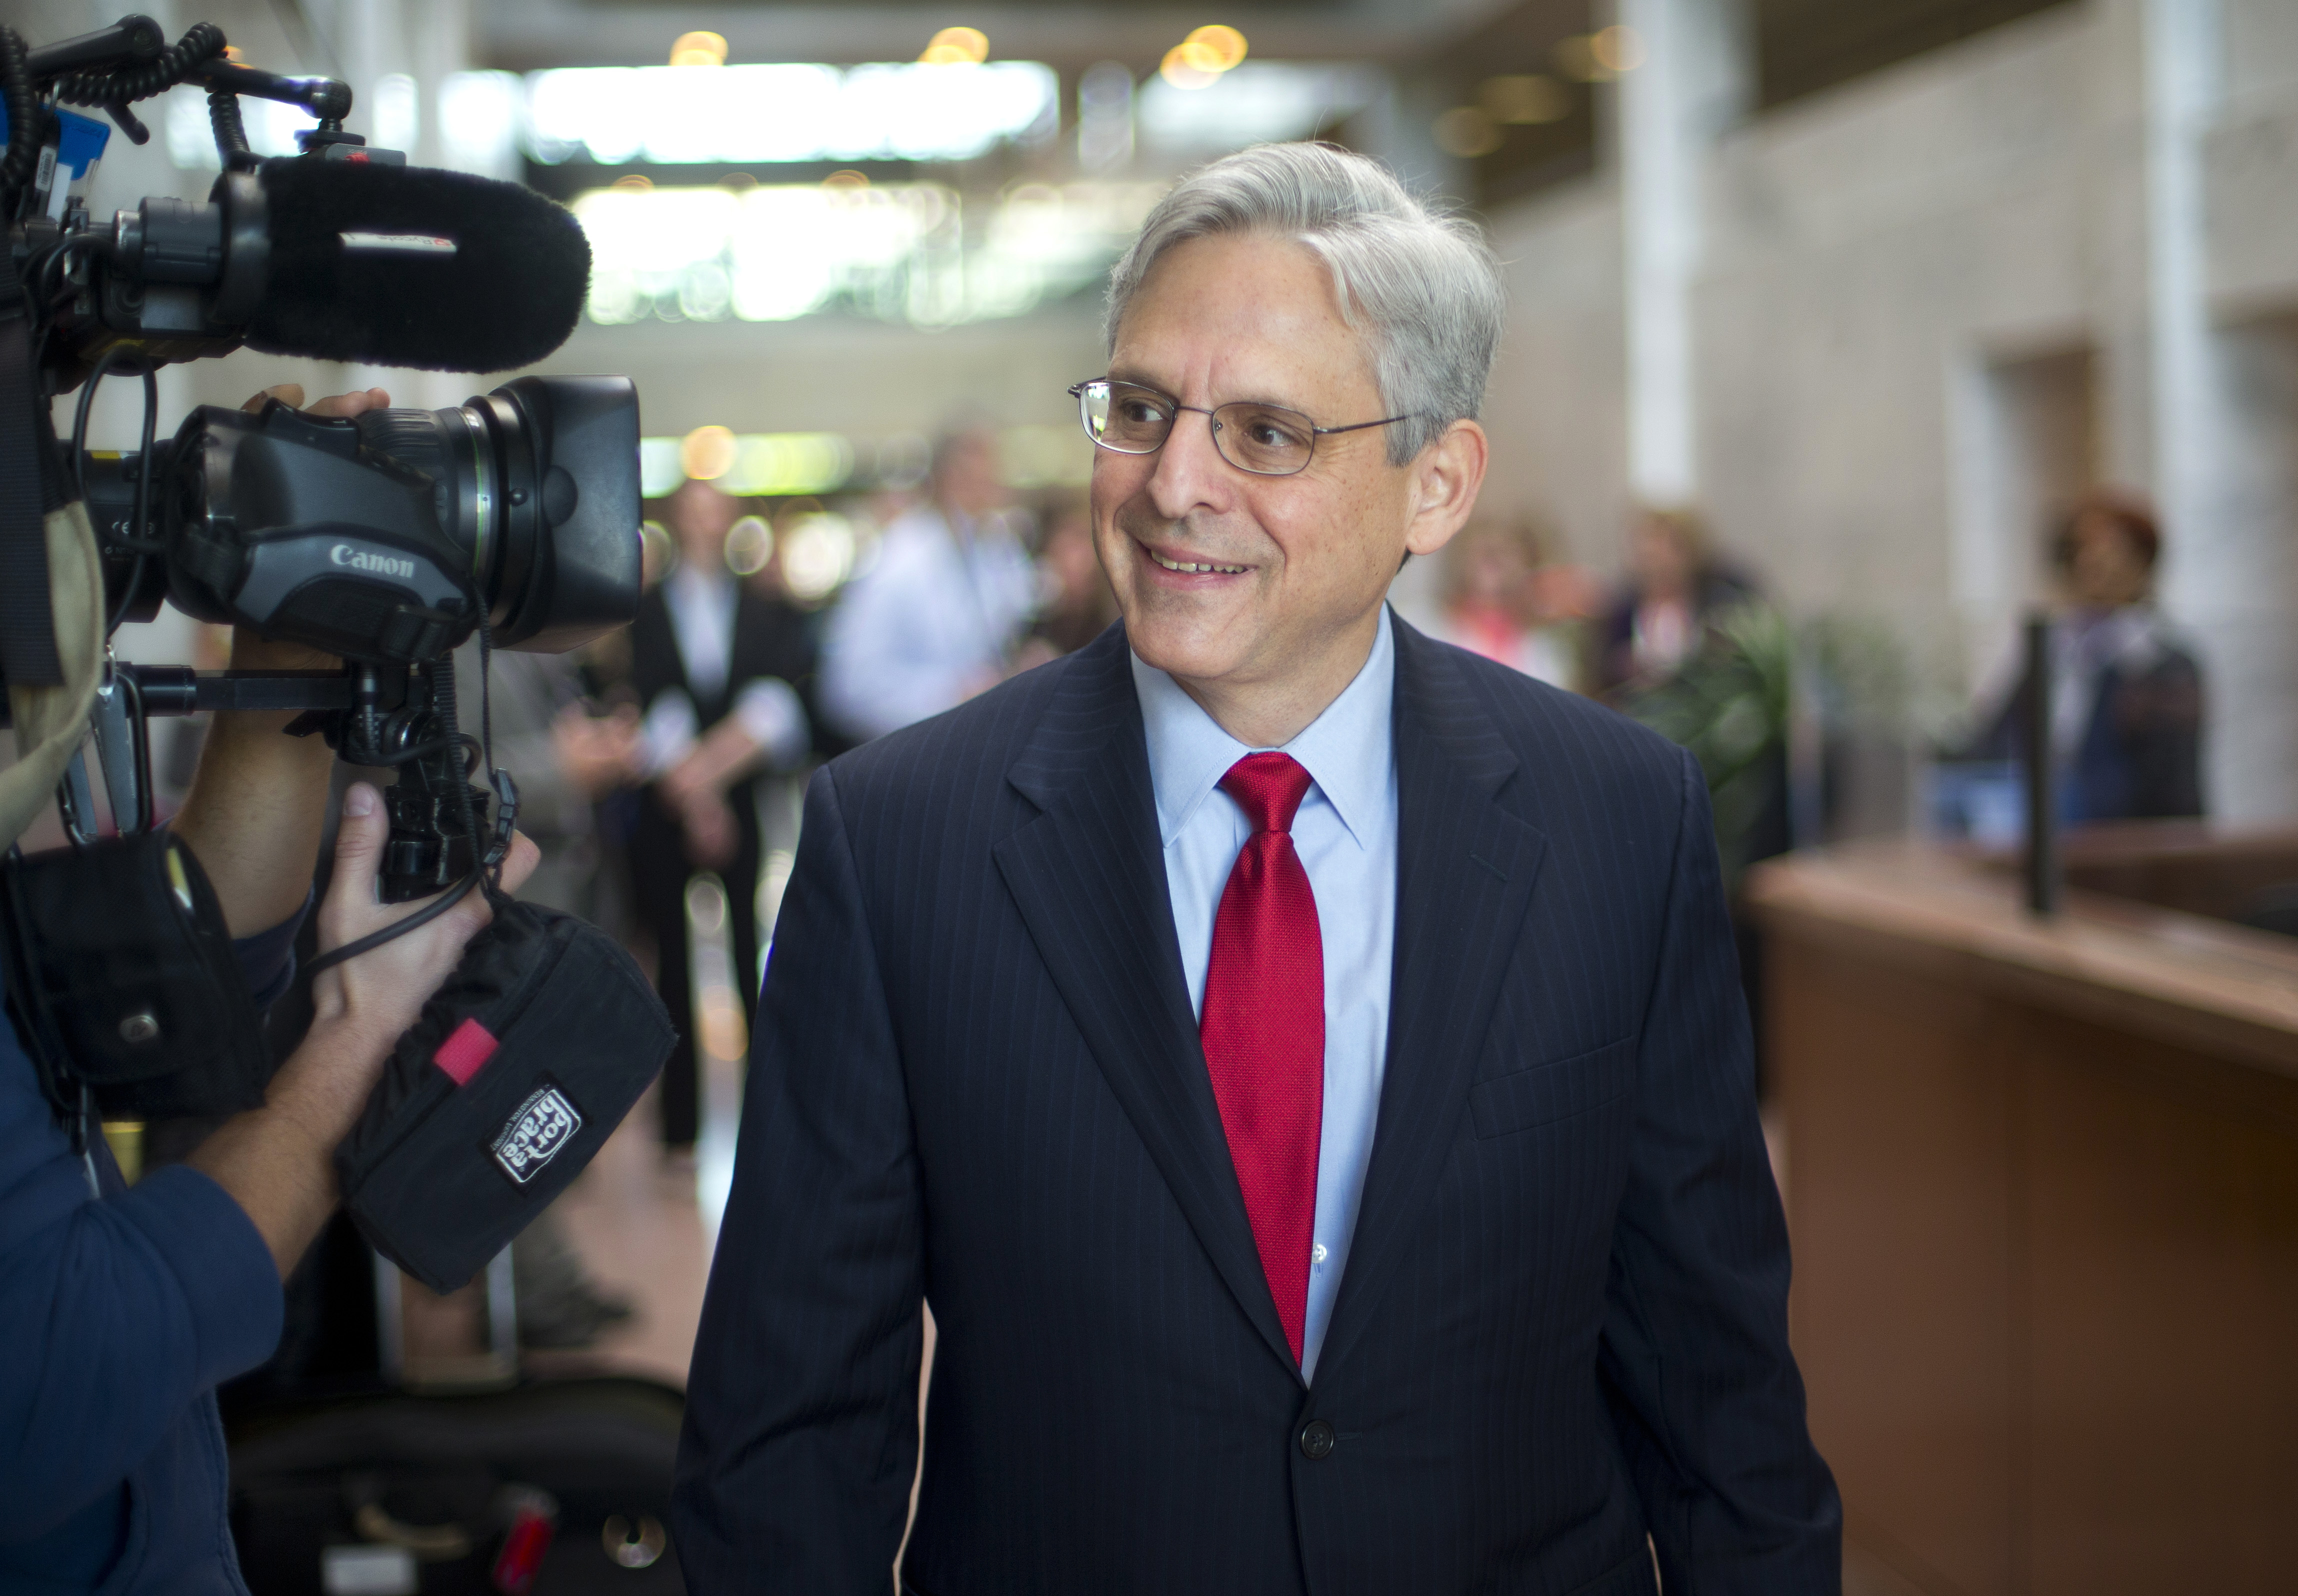 Judge Merrick Garland, President Barack Obama's choice to replace the late Justice Antonin Scalia on the Supreme Court arrives for a meeting with Sen. Angus King, I-Maine, on Capitol Hill in Washington, April 13, 2016. (AP Photo/Pablo Martinez Monsiv...